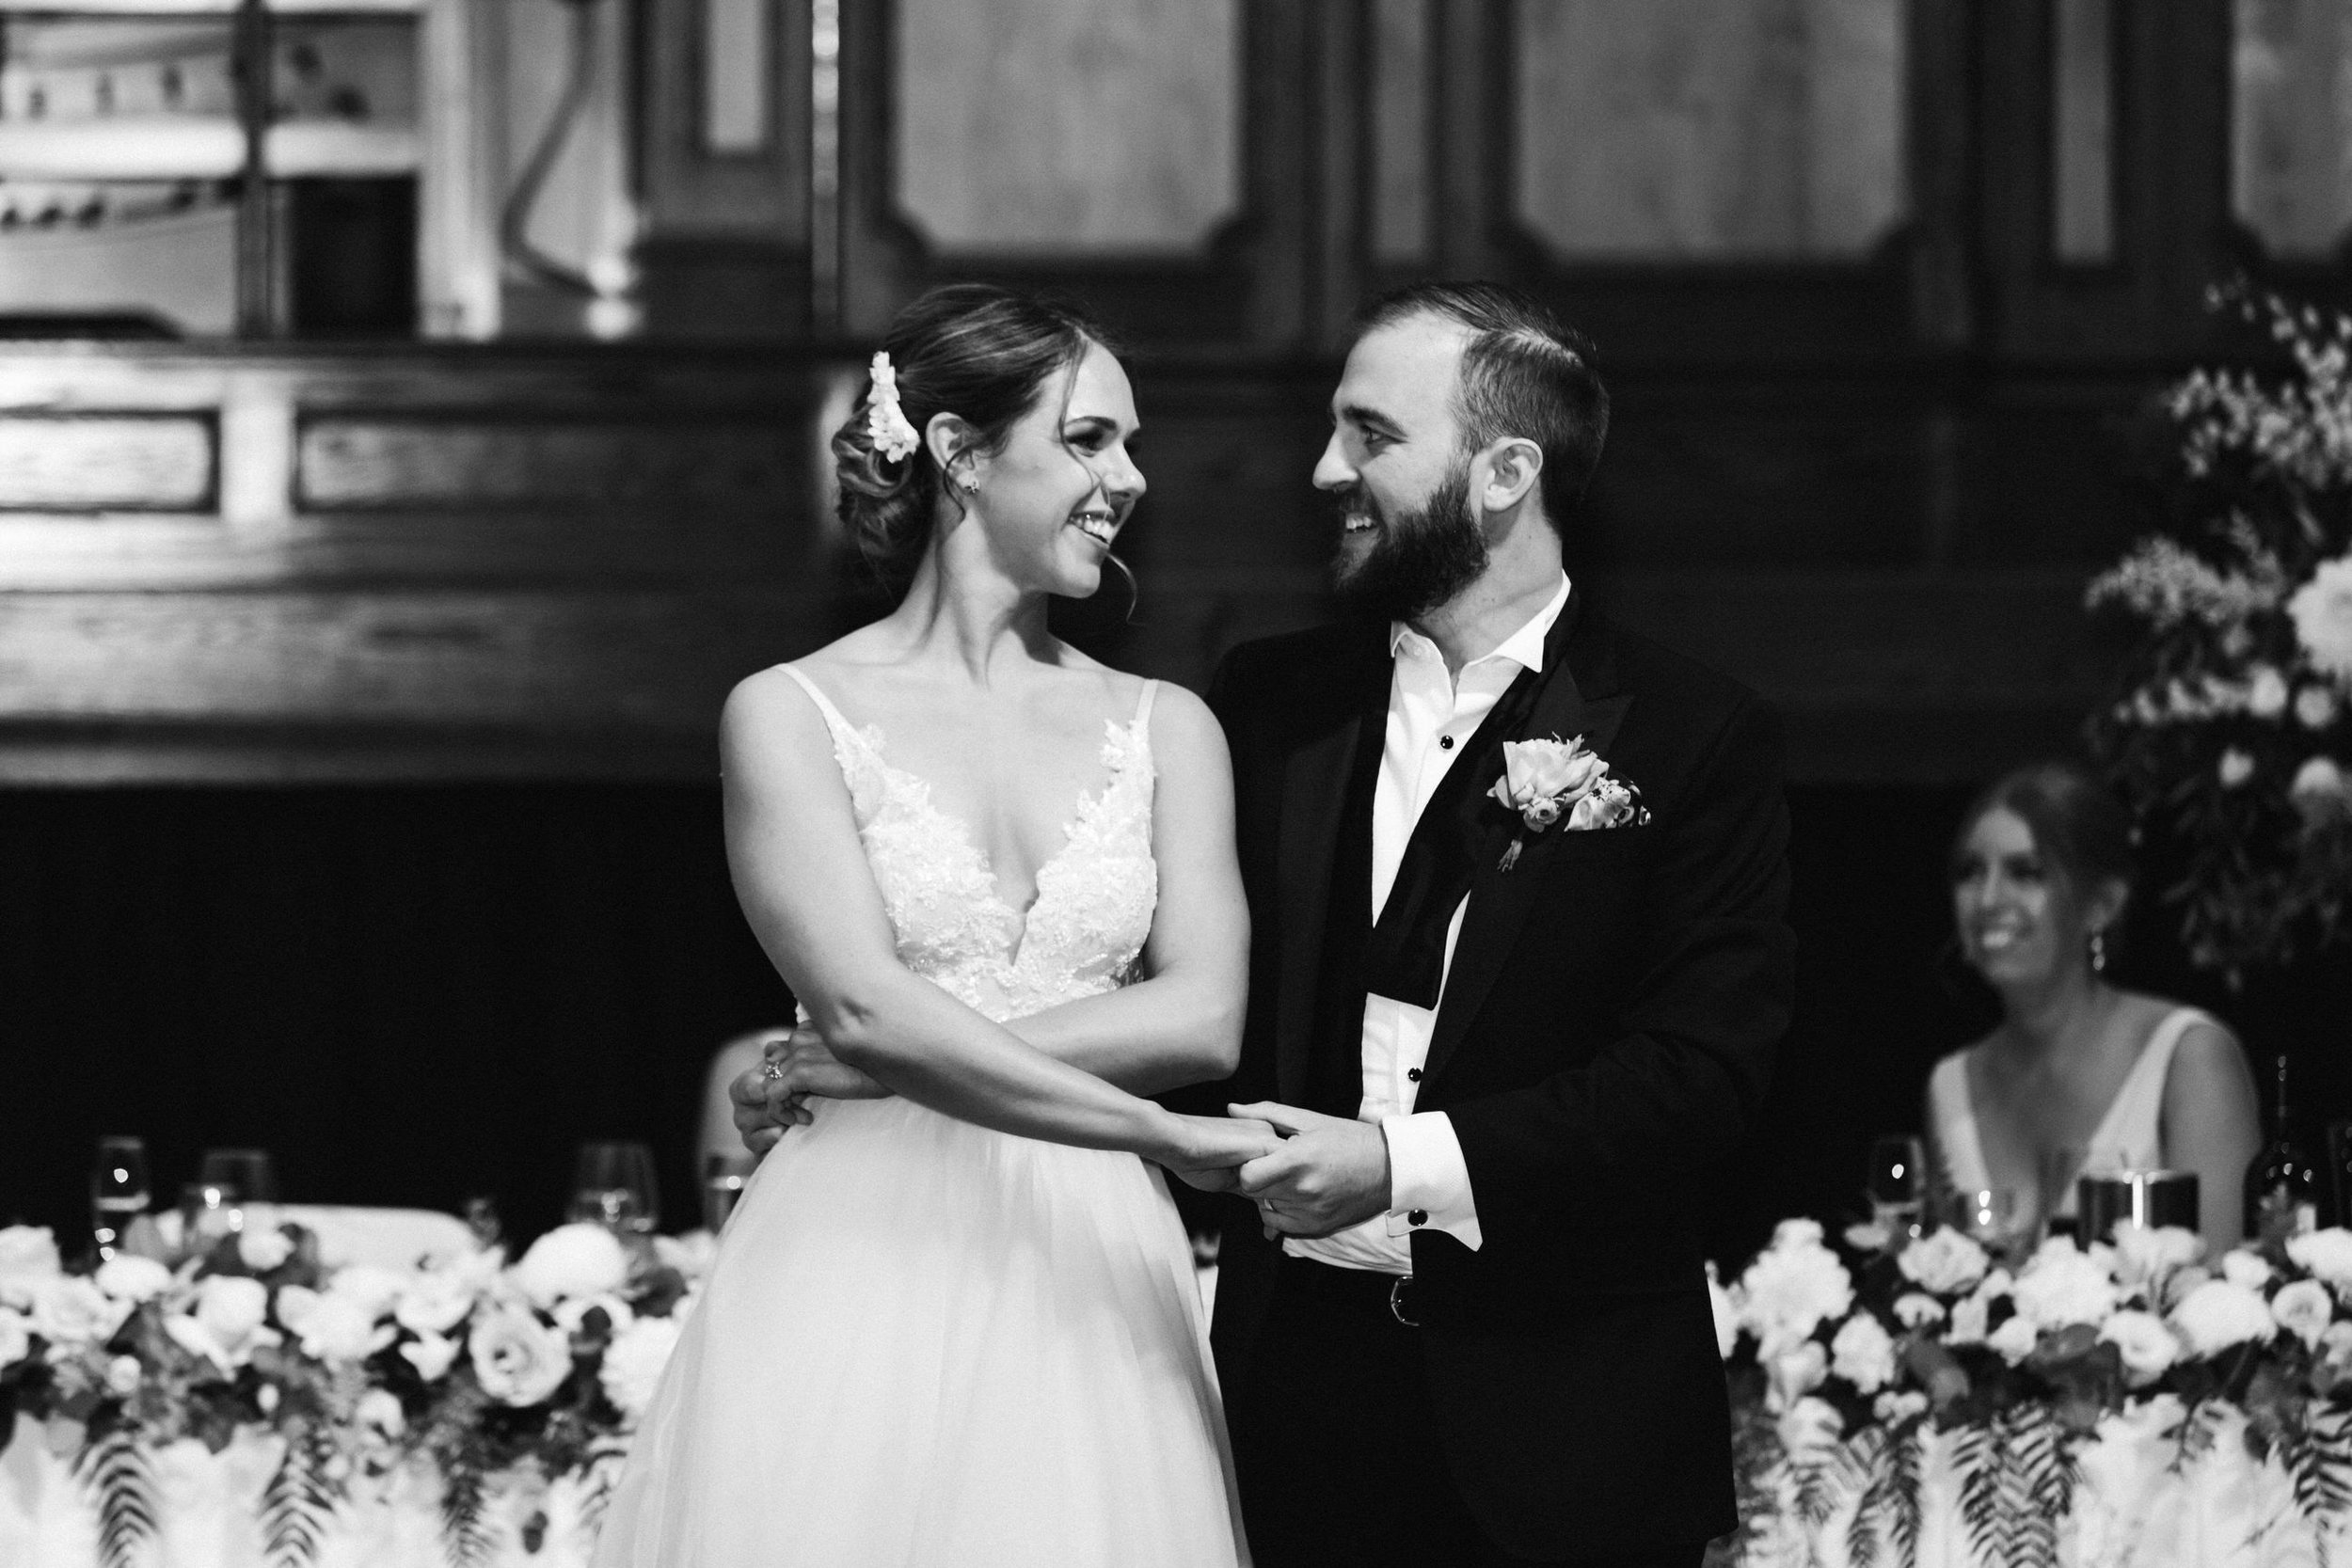 Adelaide Wedding 2019 188.jpg